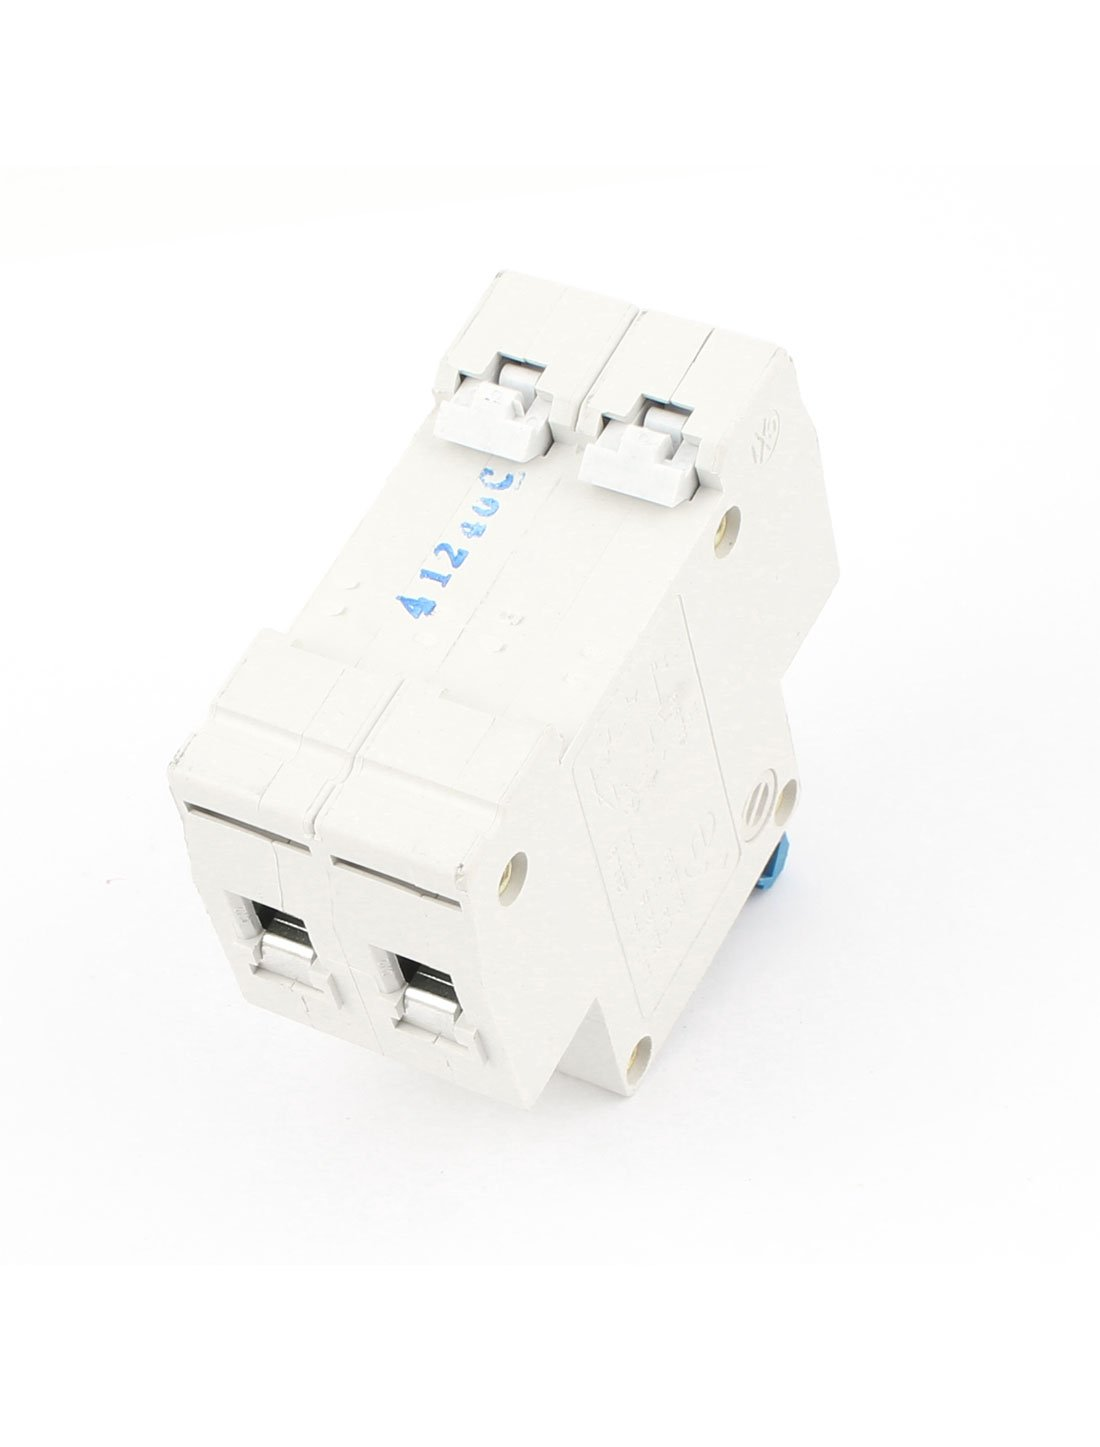 Ac 230v 400v 40a On Off Switch Double Pole Mini Circuit Breaker Types Video Different Of Breakers Ehow 6000a